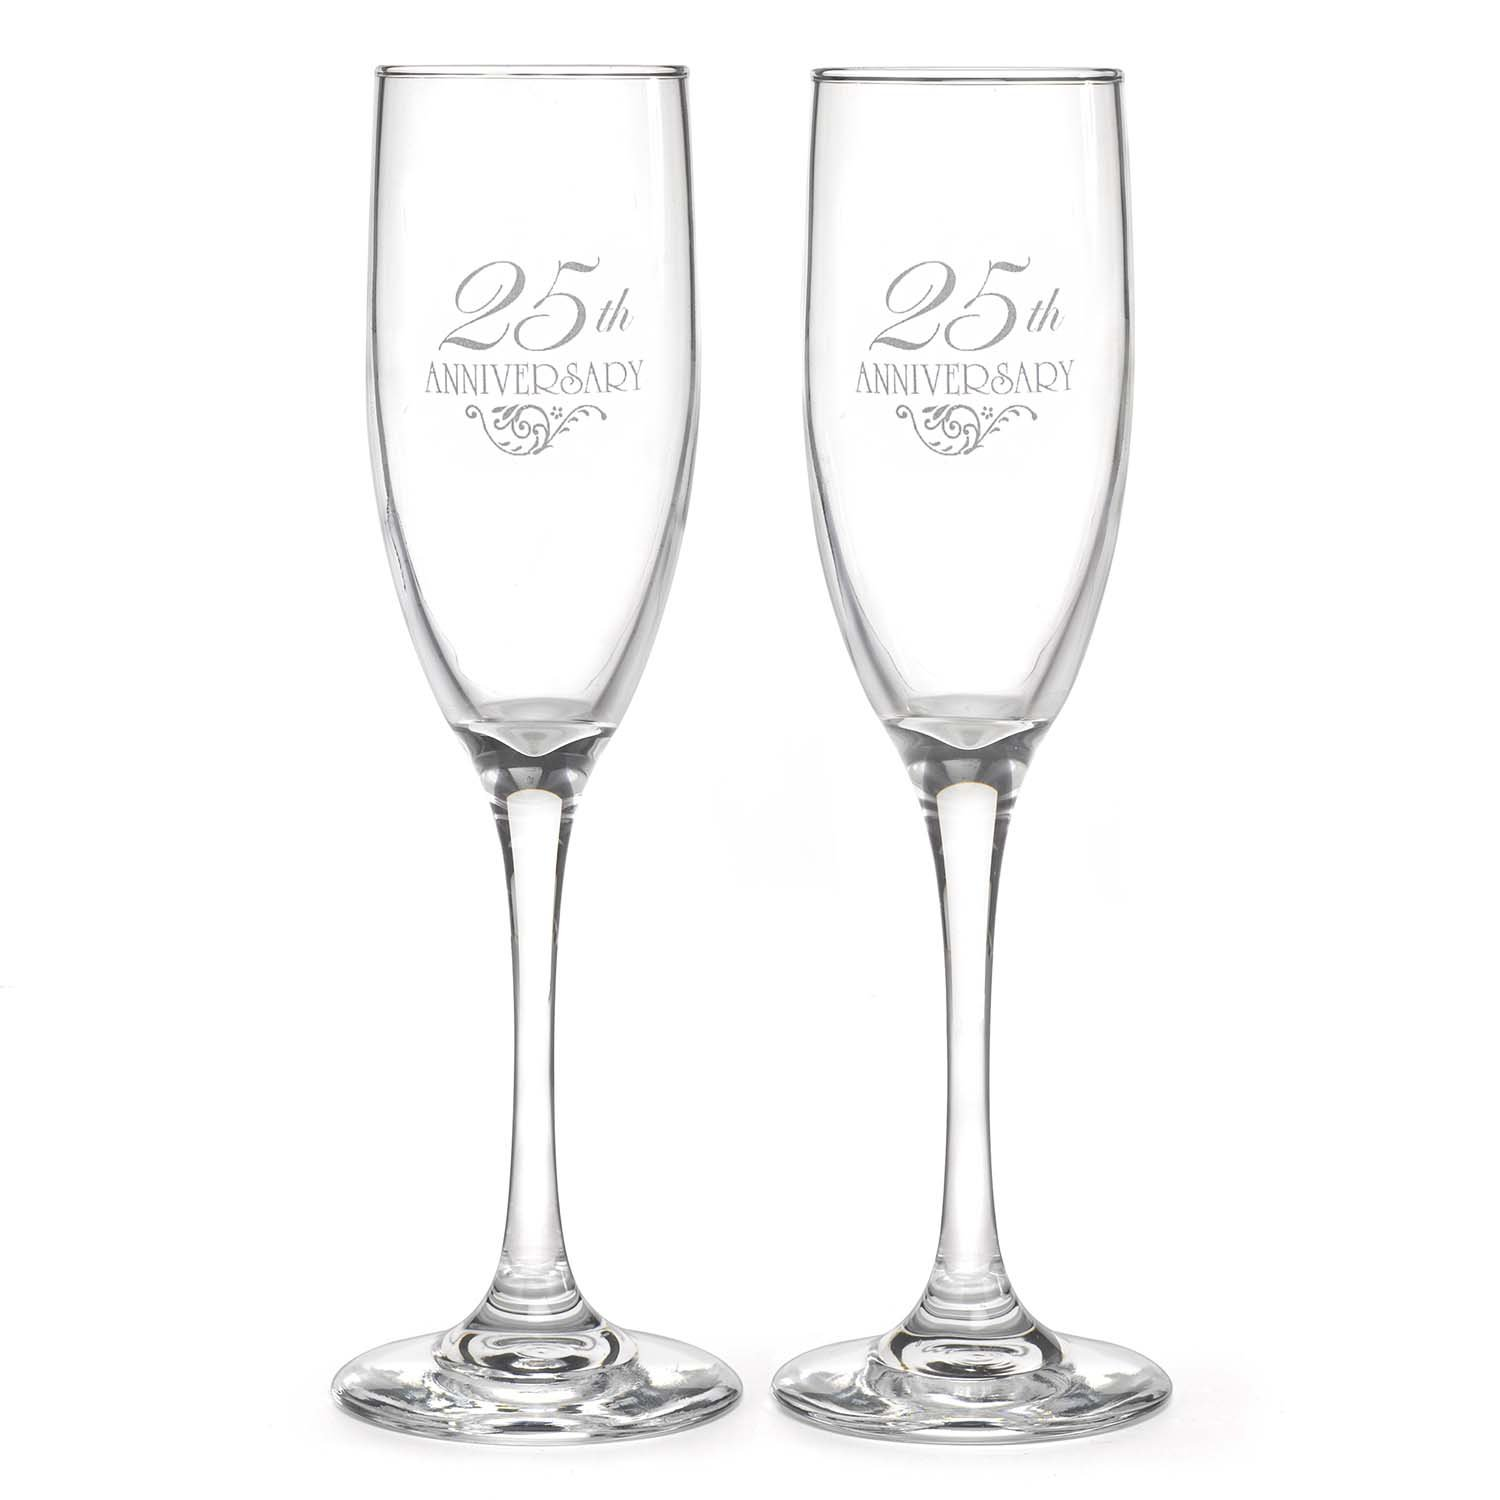 Hortense B. Hewitt Wedding Accessories 25th Anniversary Champagne Toasting Flutes, Set of 2